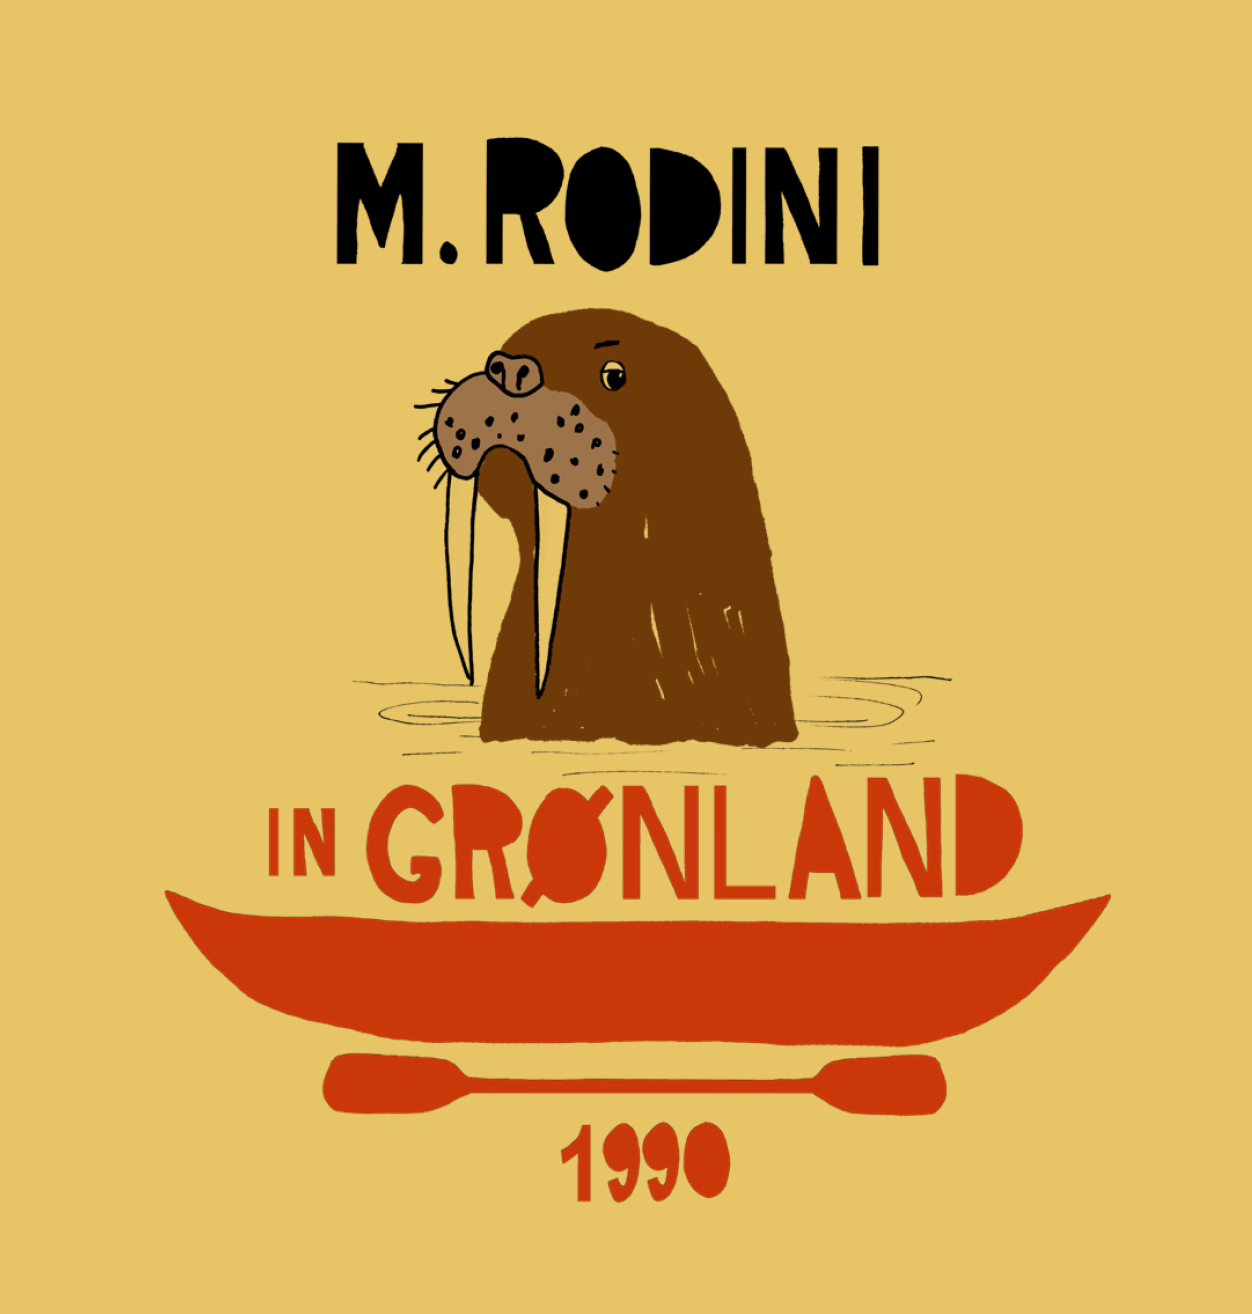 Mini Rodini Fall/Winter 2021 collection at Bonjour Baby Baskets